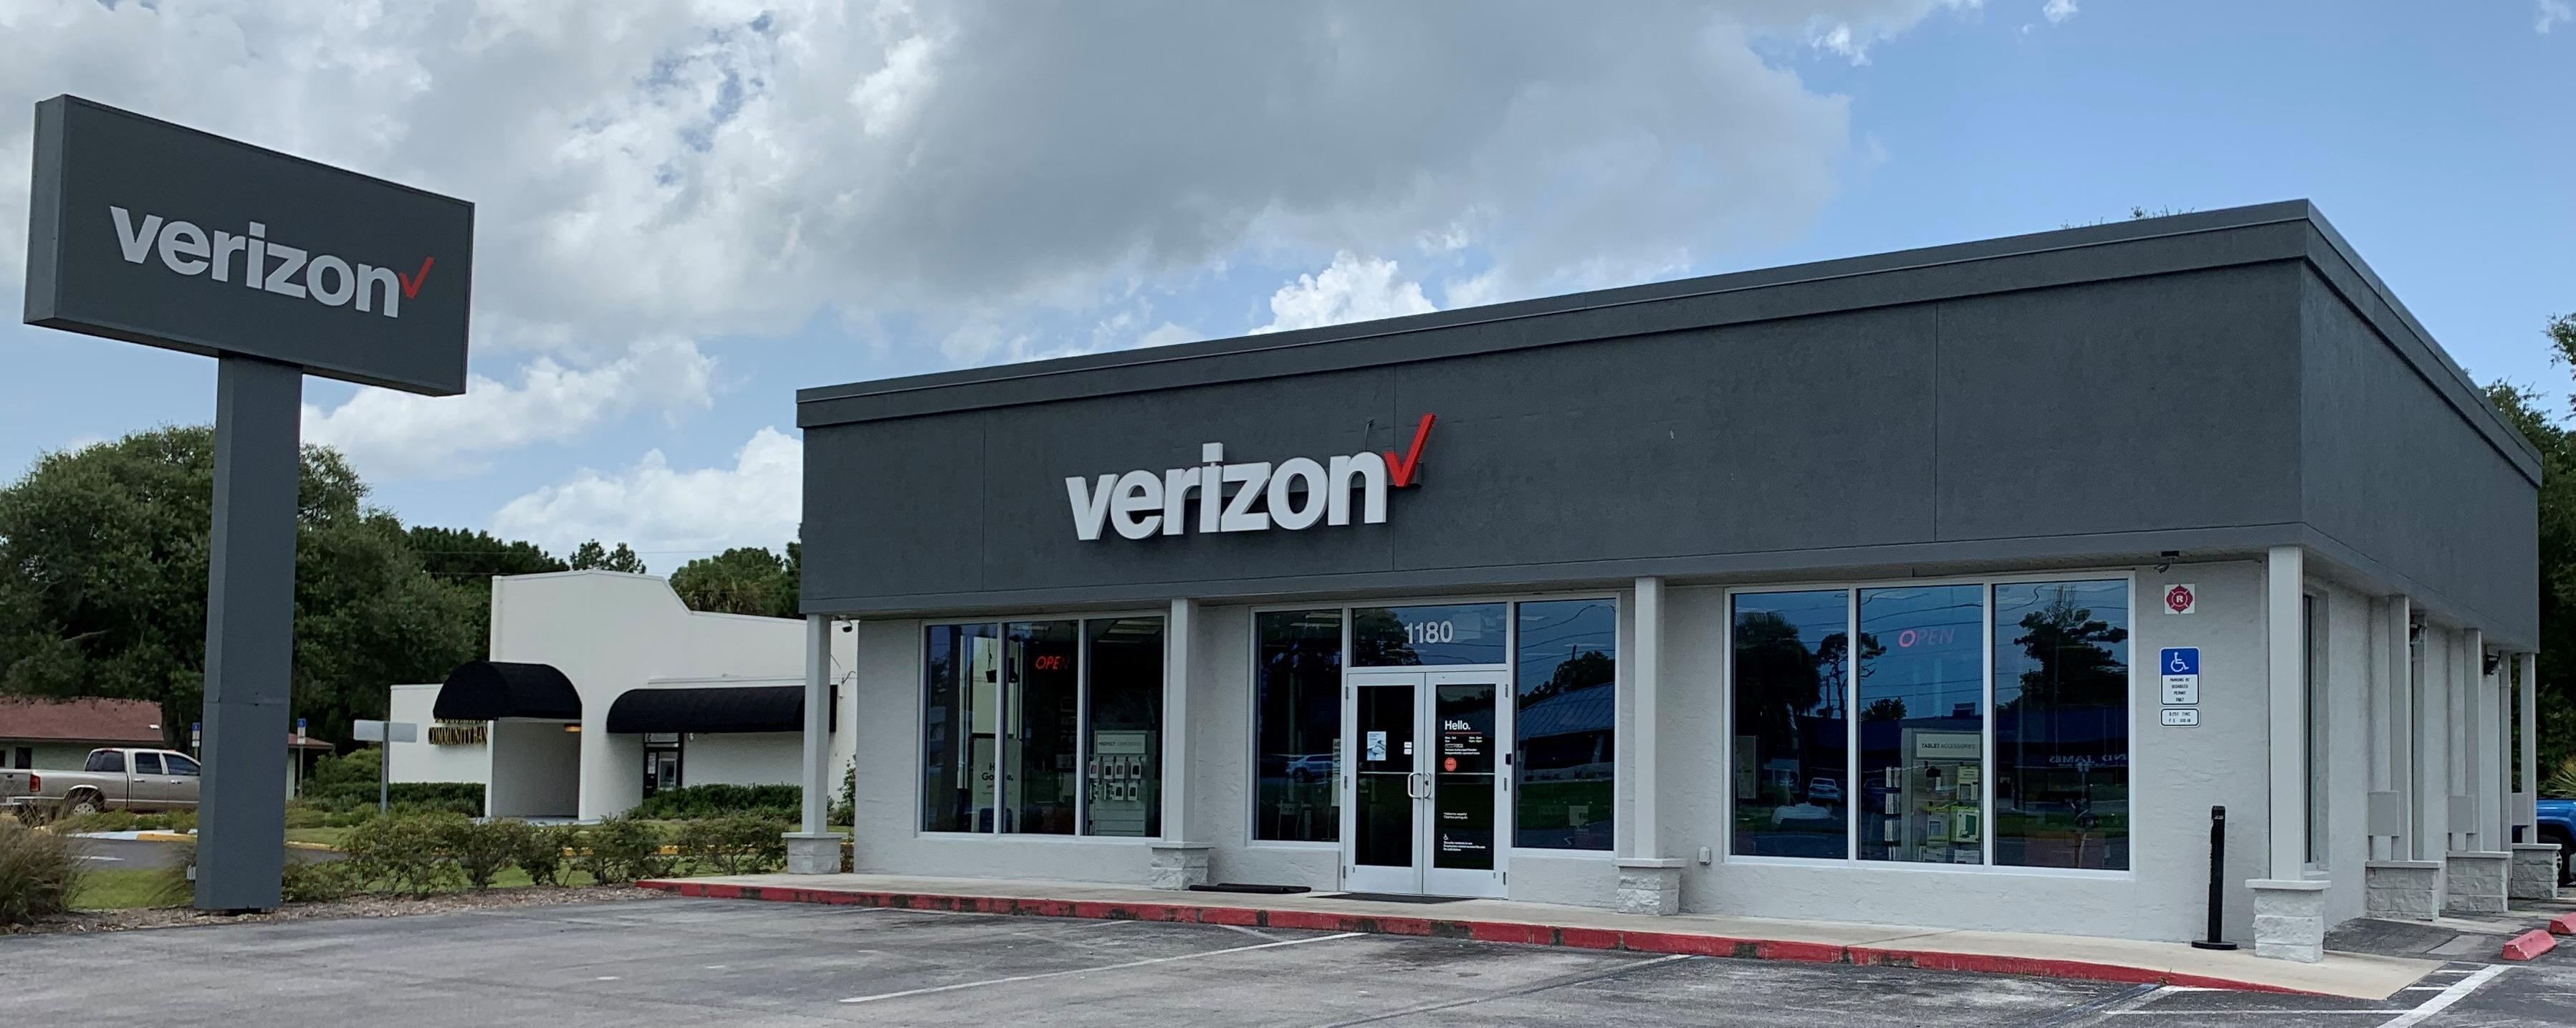 Verizon Authorized Retailer – Cellular Sales Photo